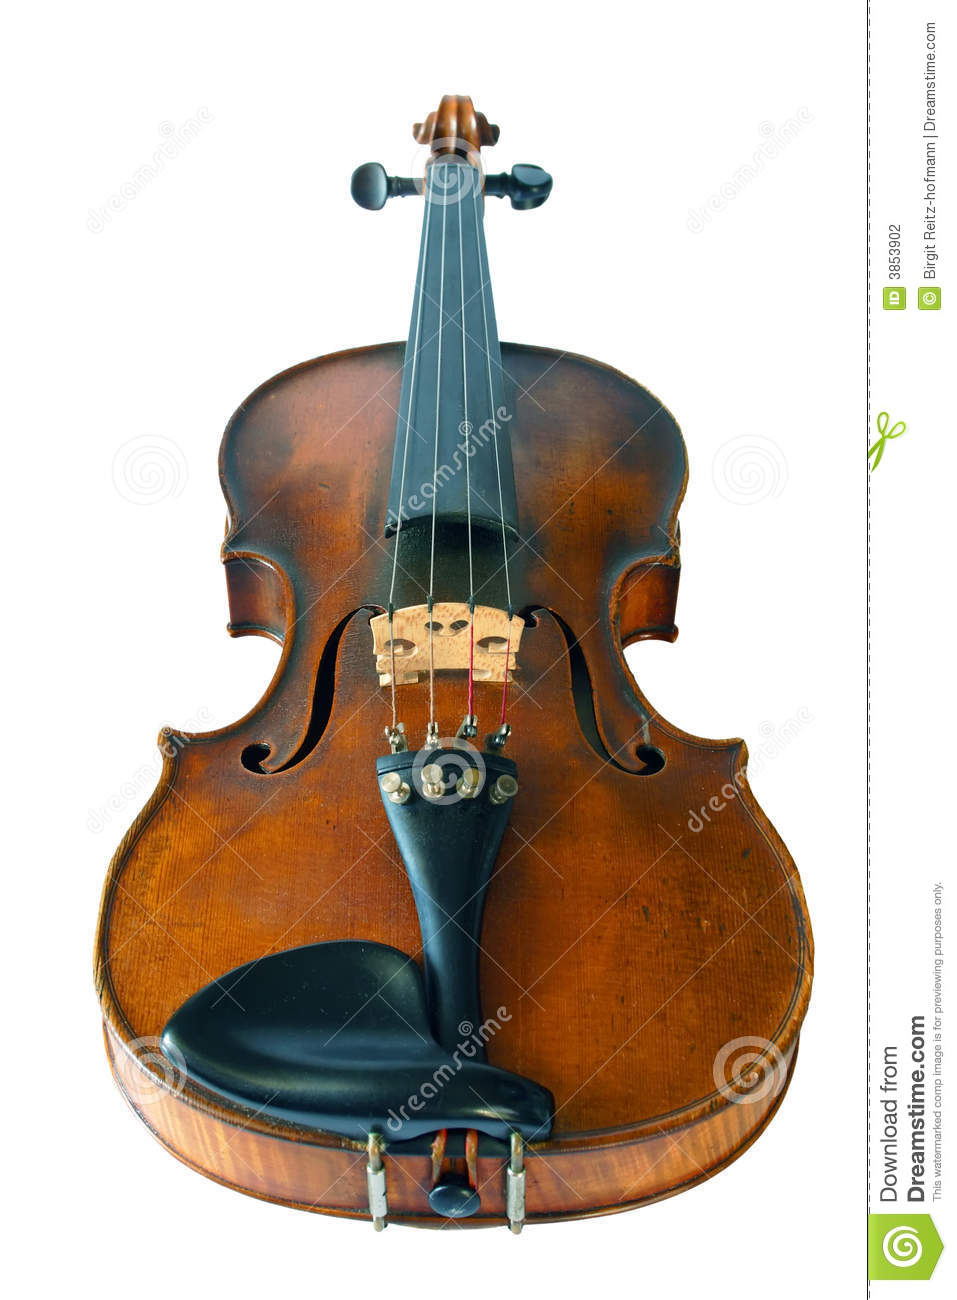 Old violine isolated